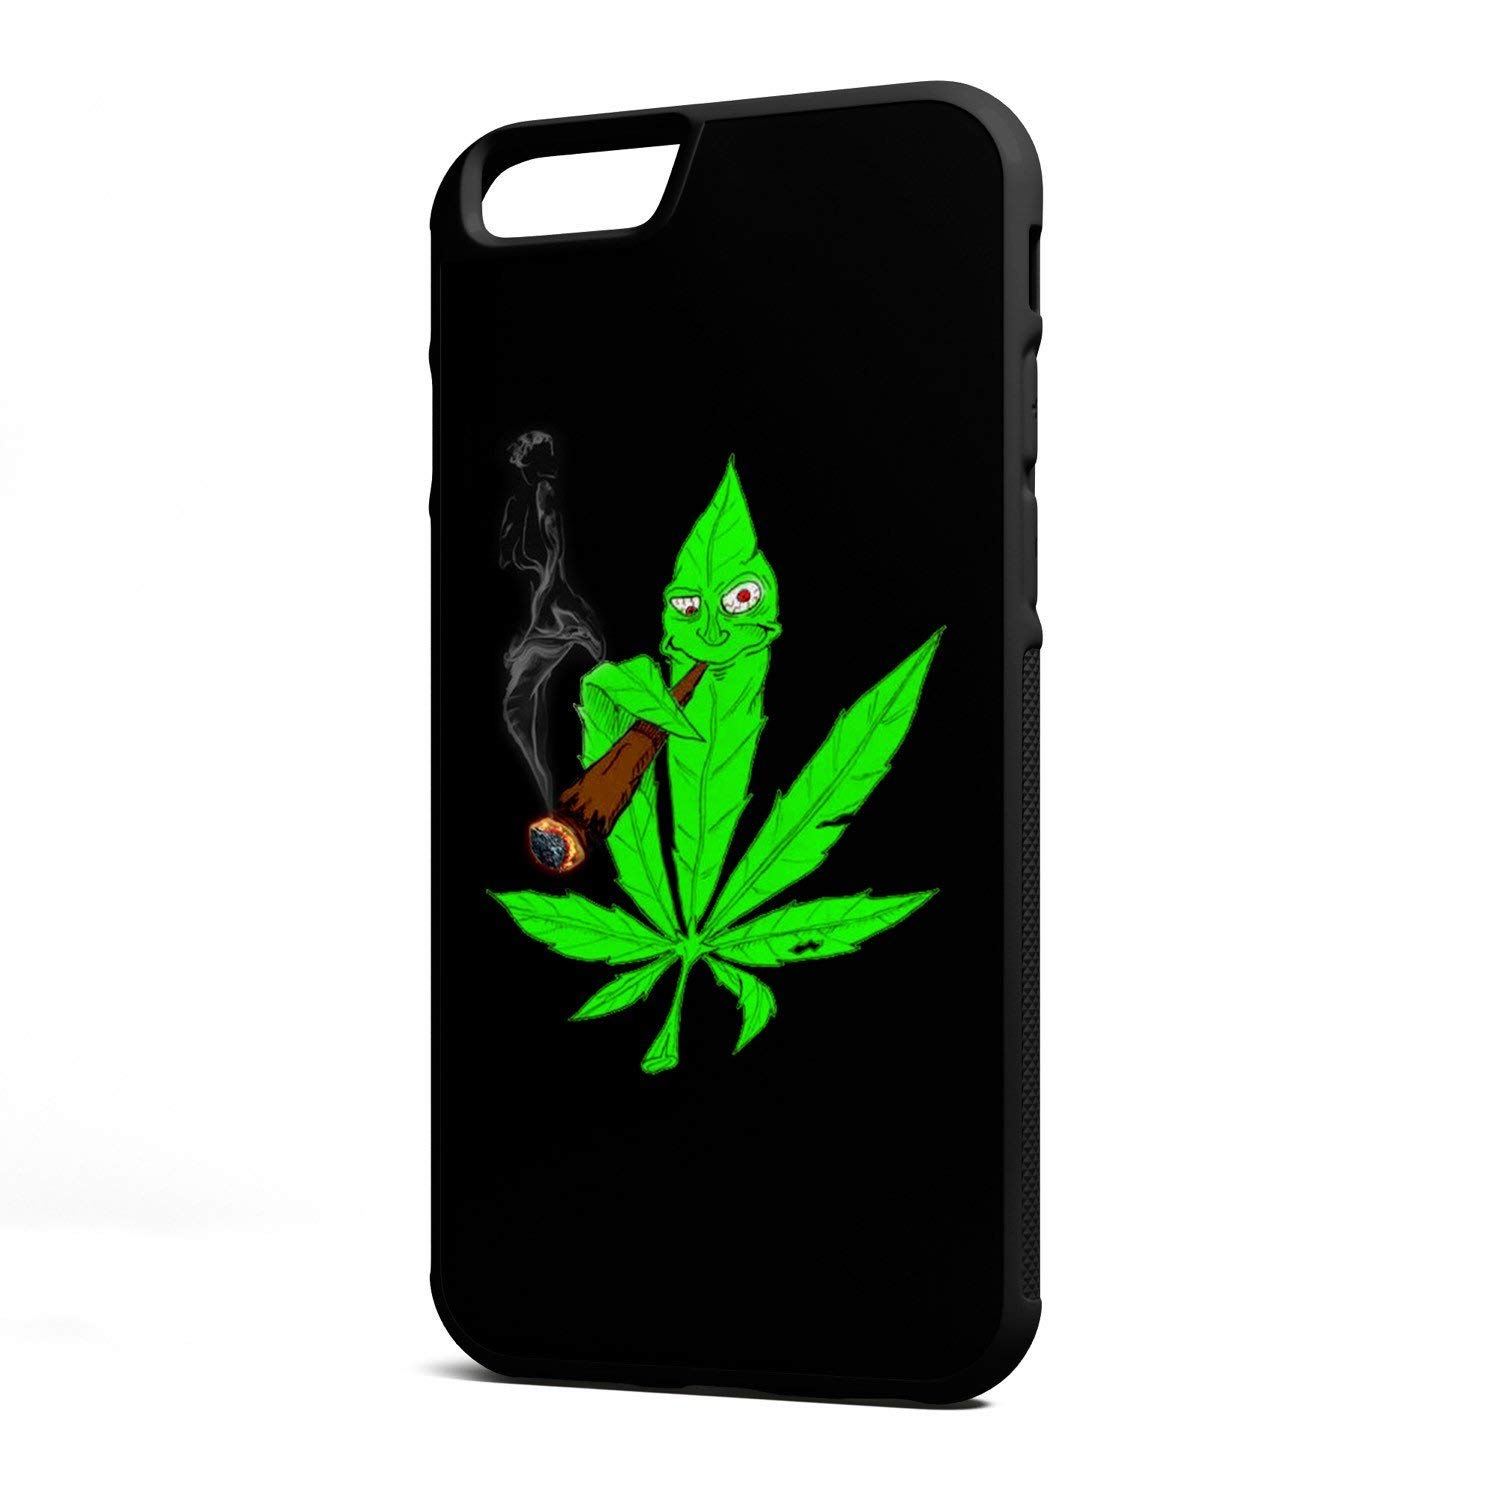 Flying Foxes Cases – Weed Marijuana Cannabis Kush-Hard Rubber Phone case for Apple iPhone Xs MAX (2018 Model) Made and Shipped from The USA